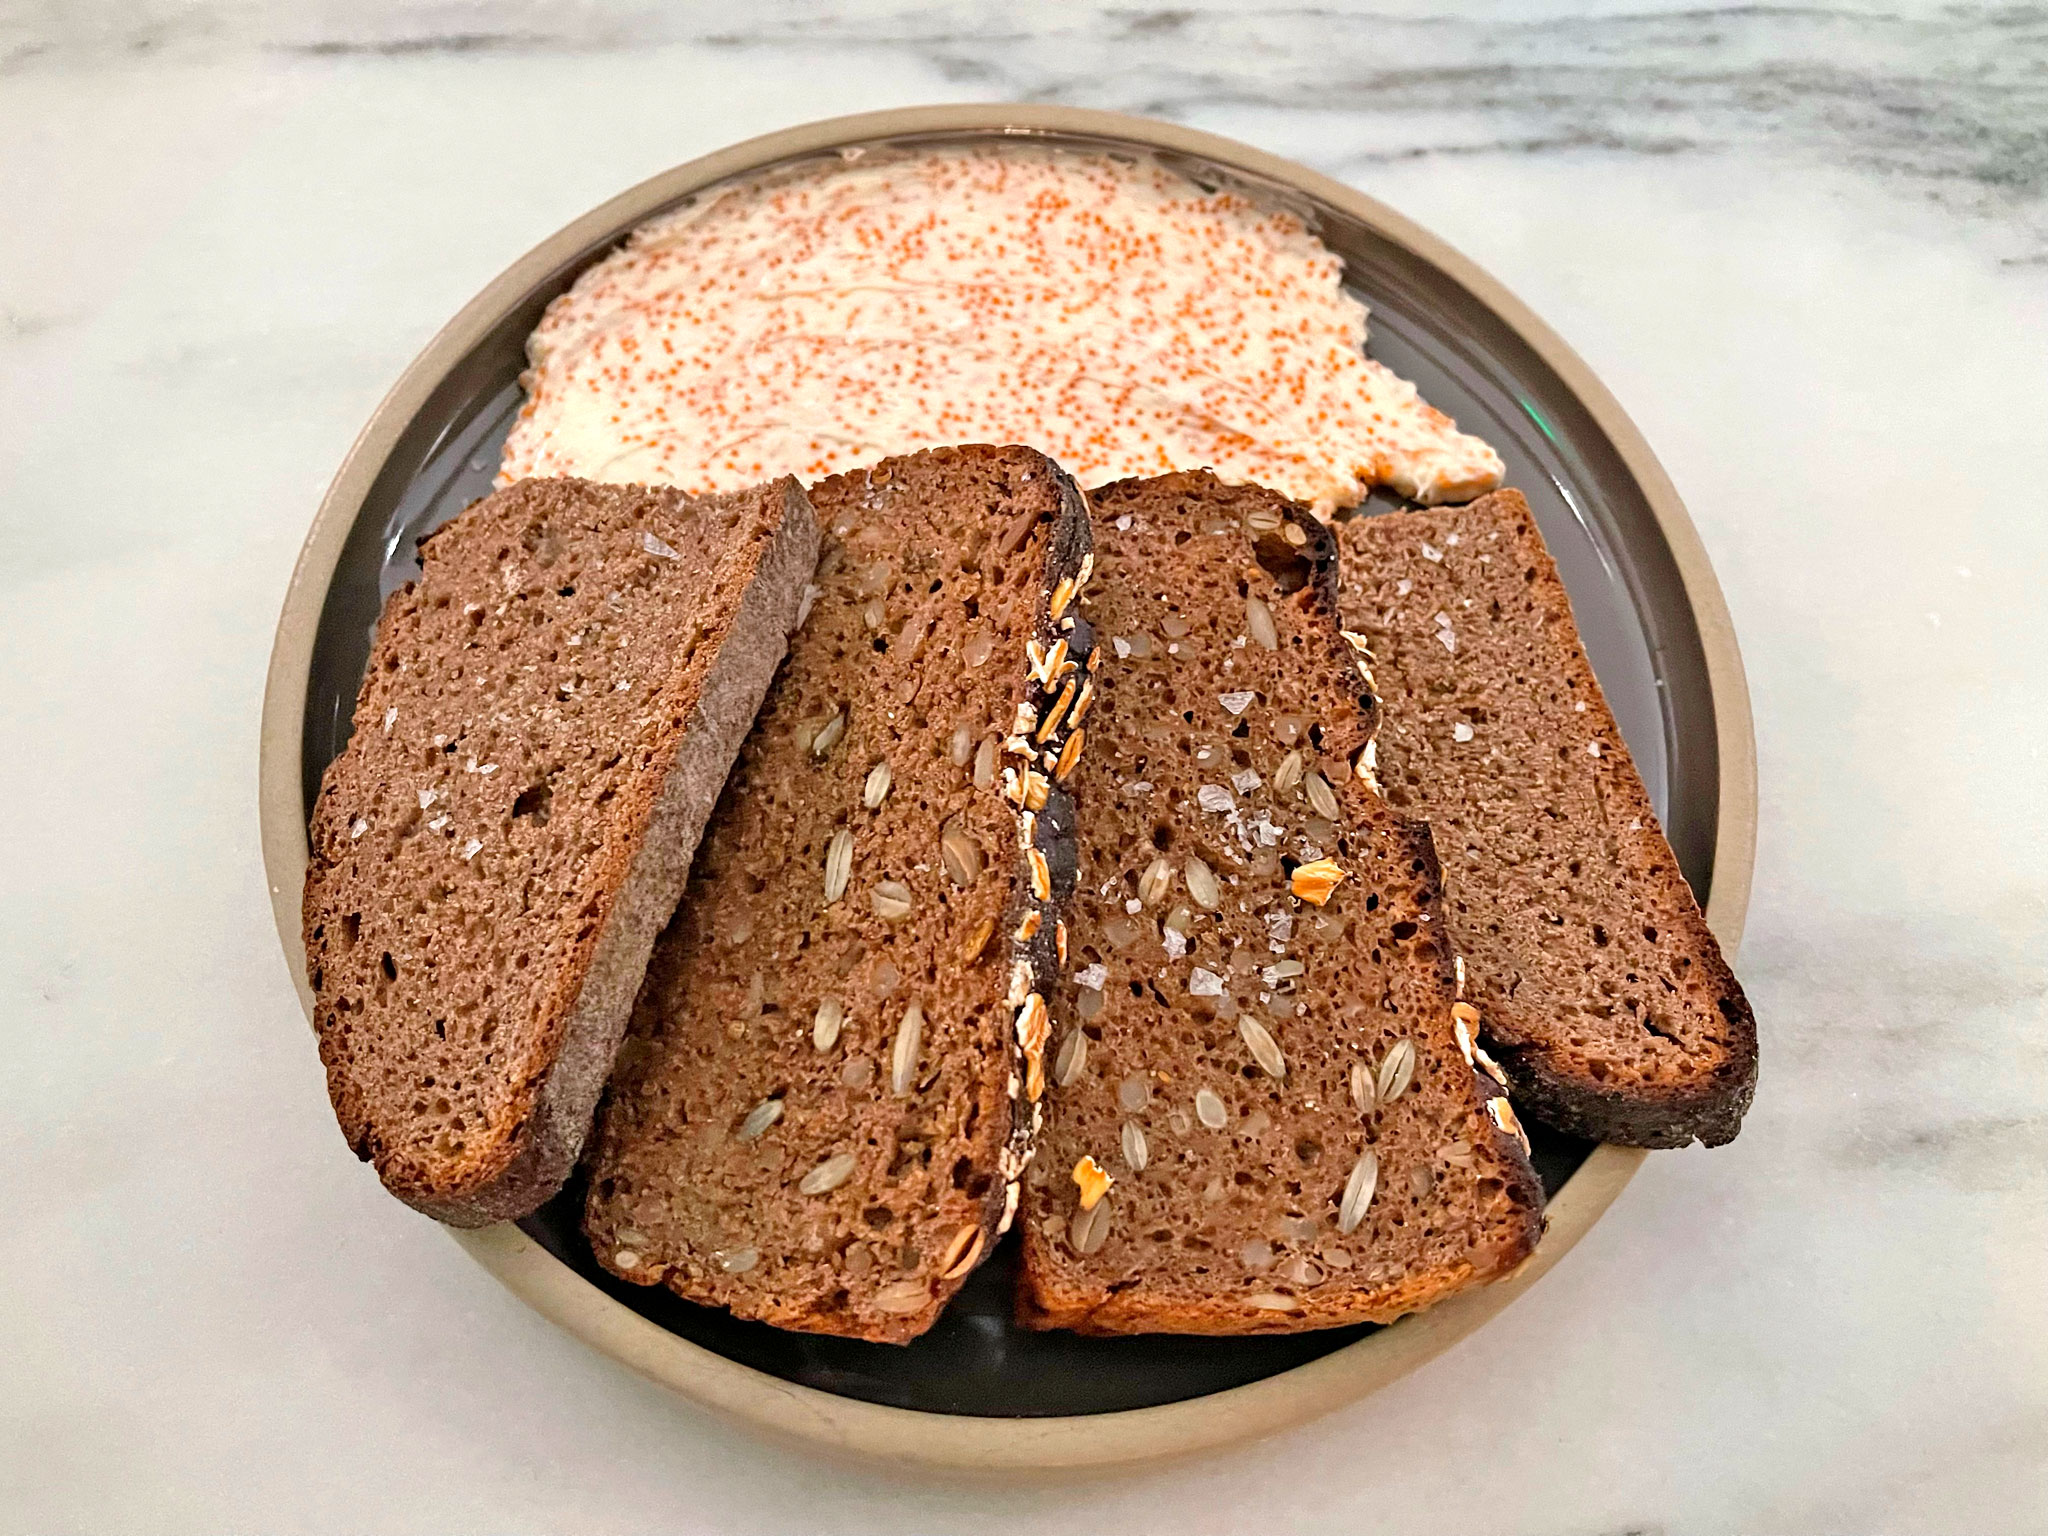 Jamison Pan Seeded & Round Rye Bread with Whipped Roe Butter